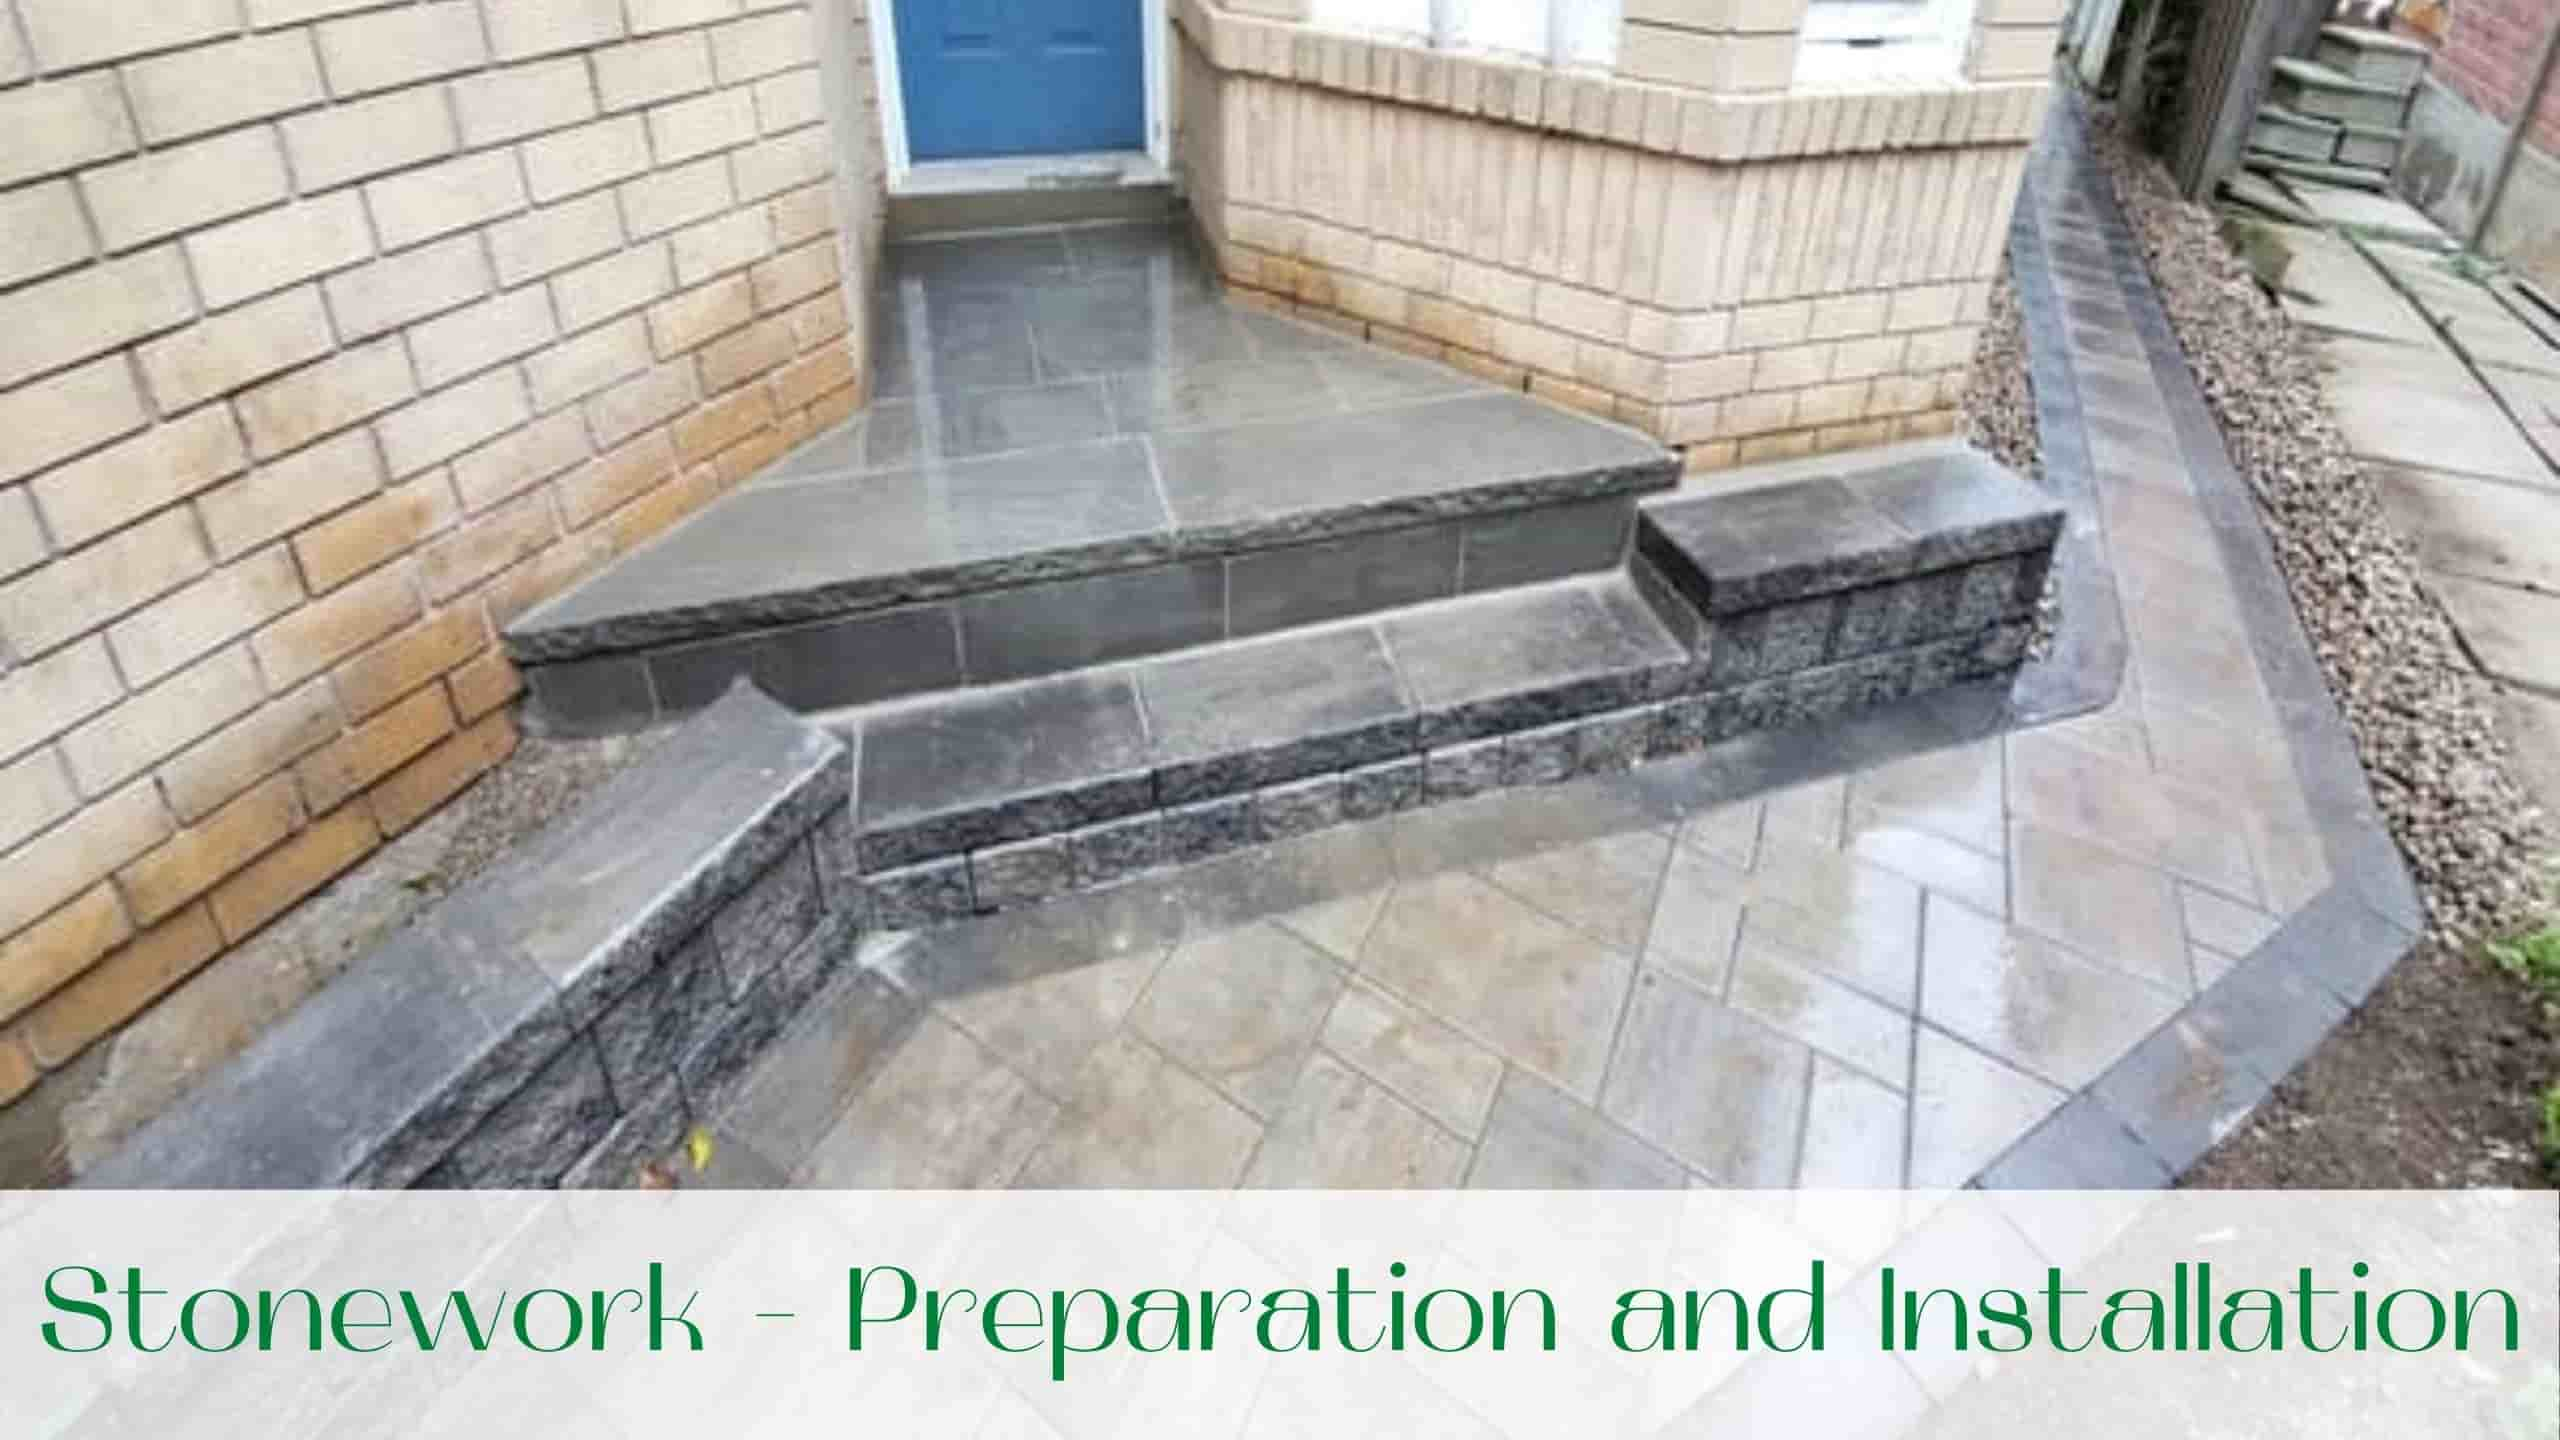 image-Stonework-Preparation-and-Installation